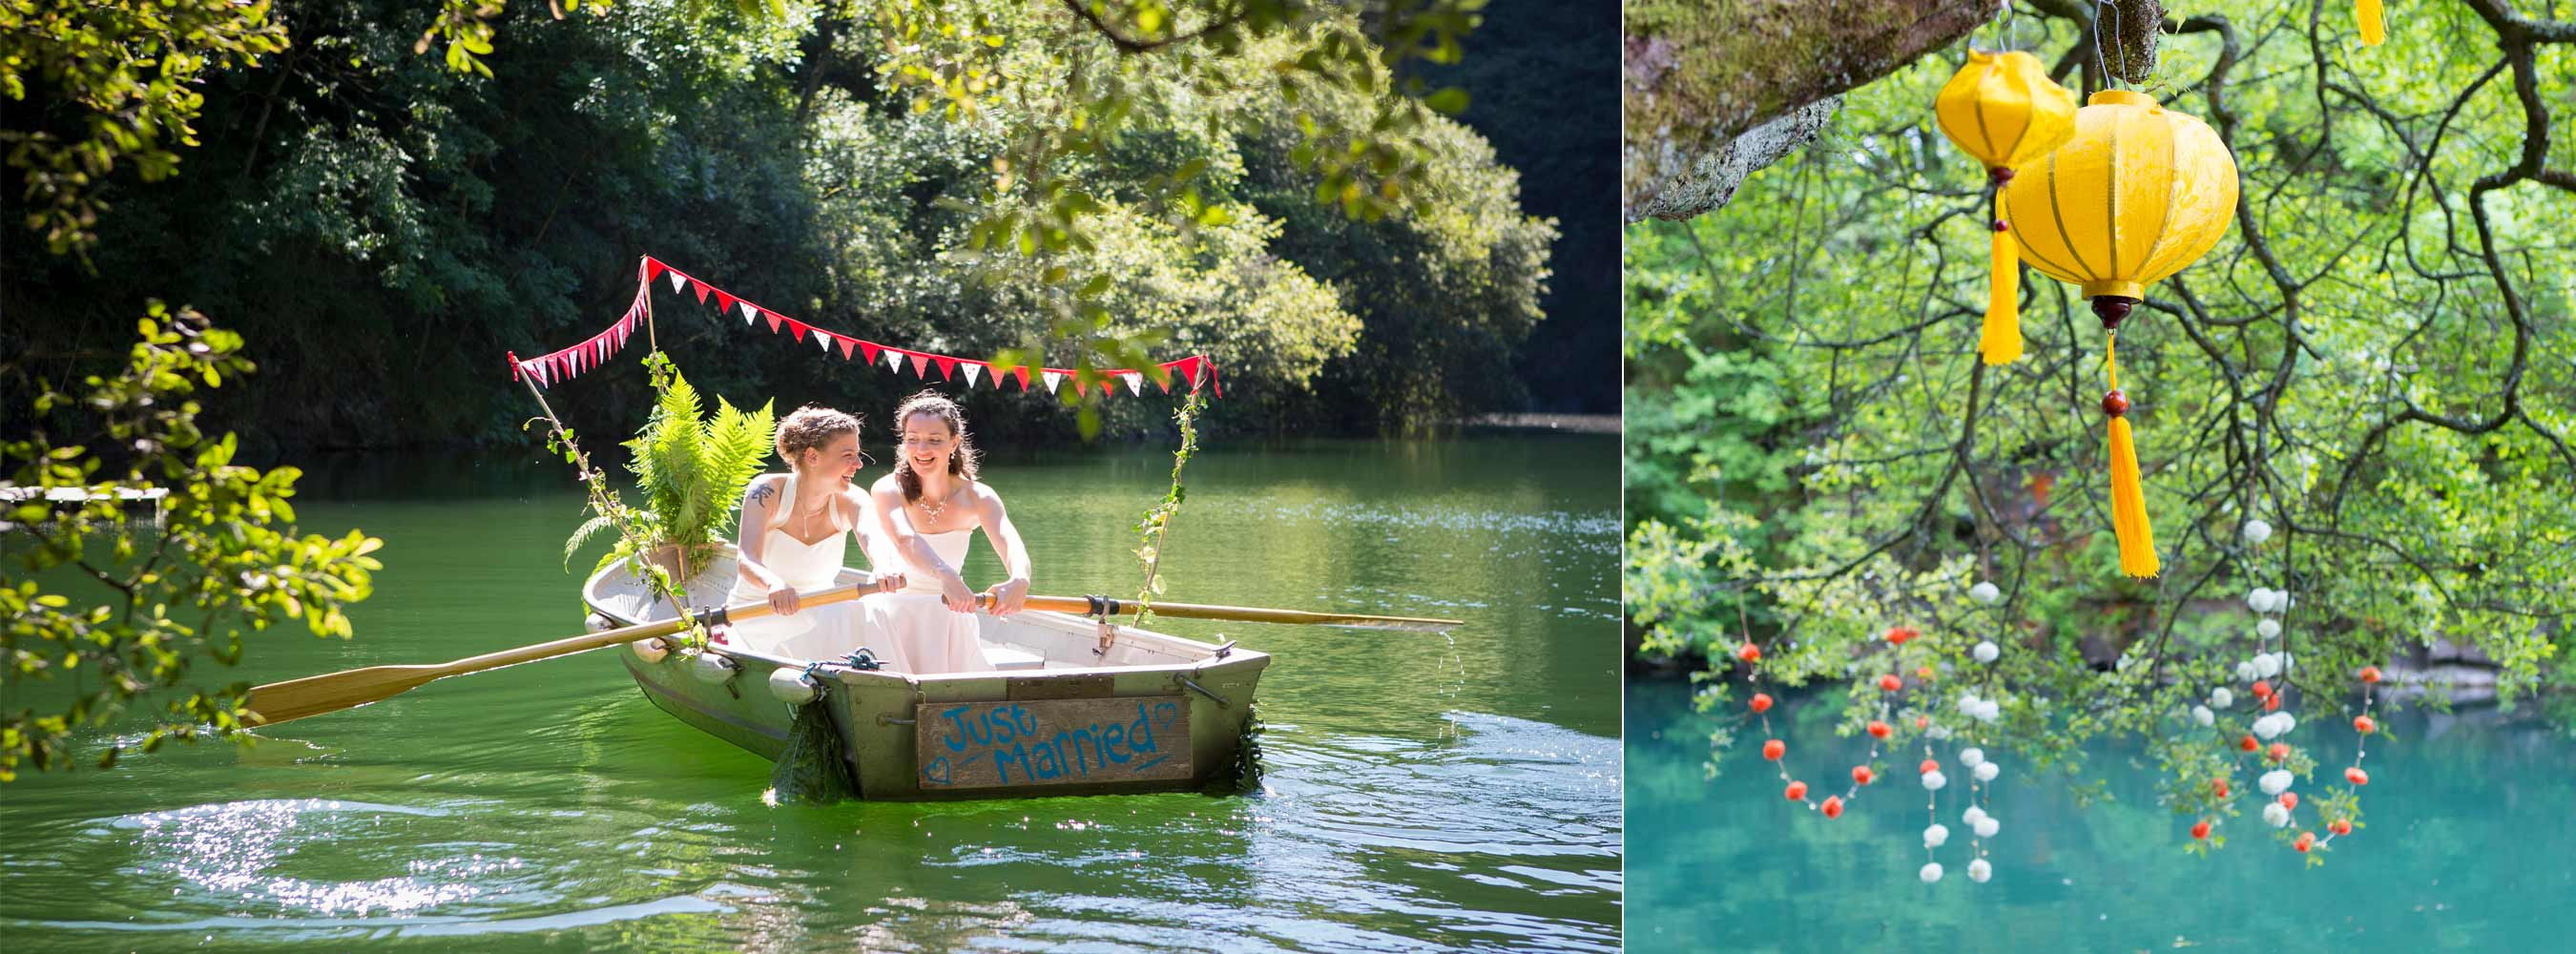 2 brides in a boat and Chinese lantern decorations